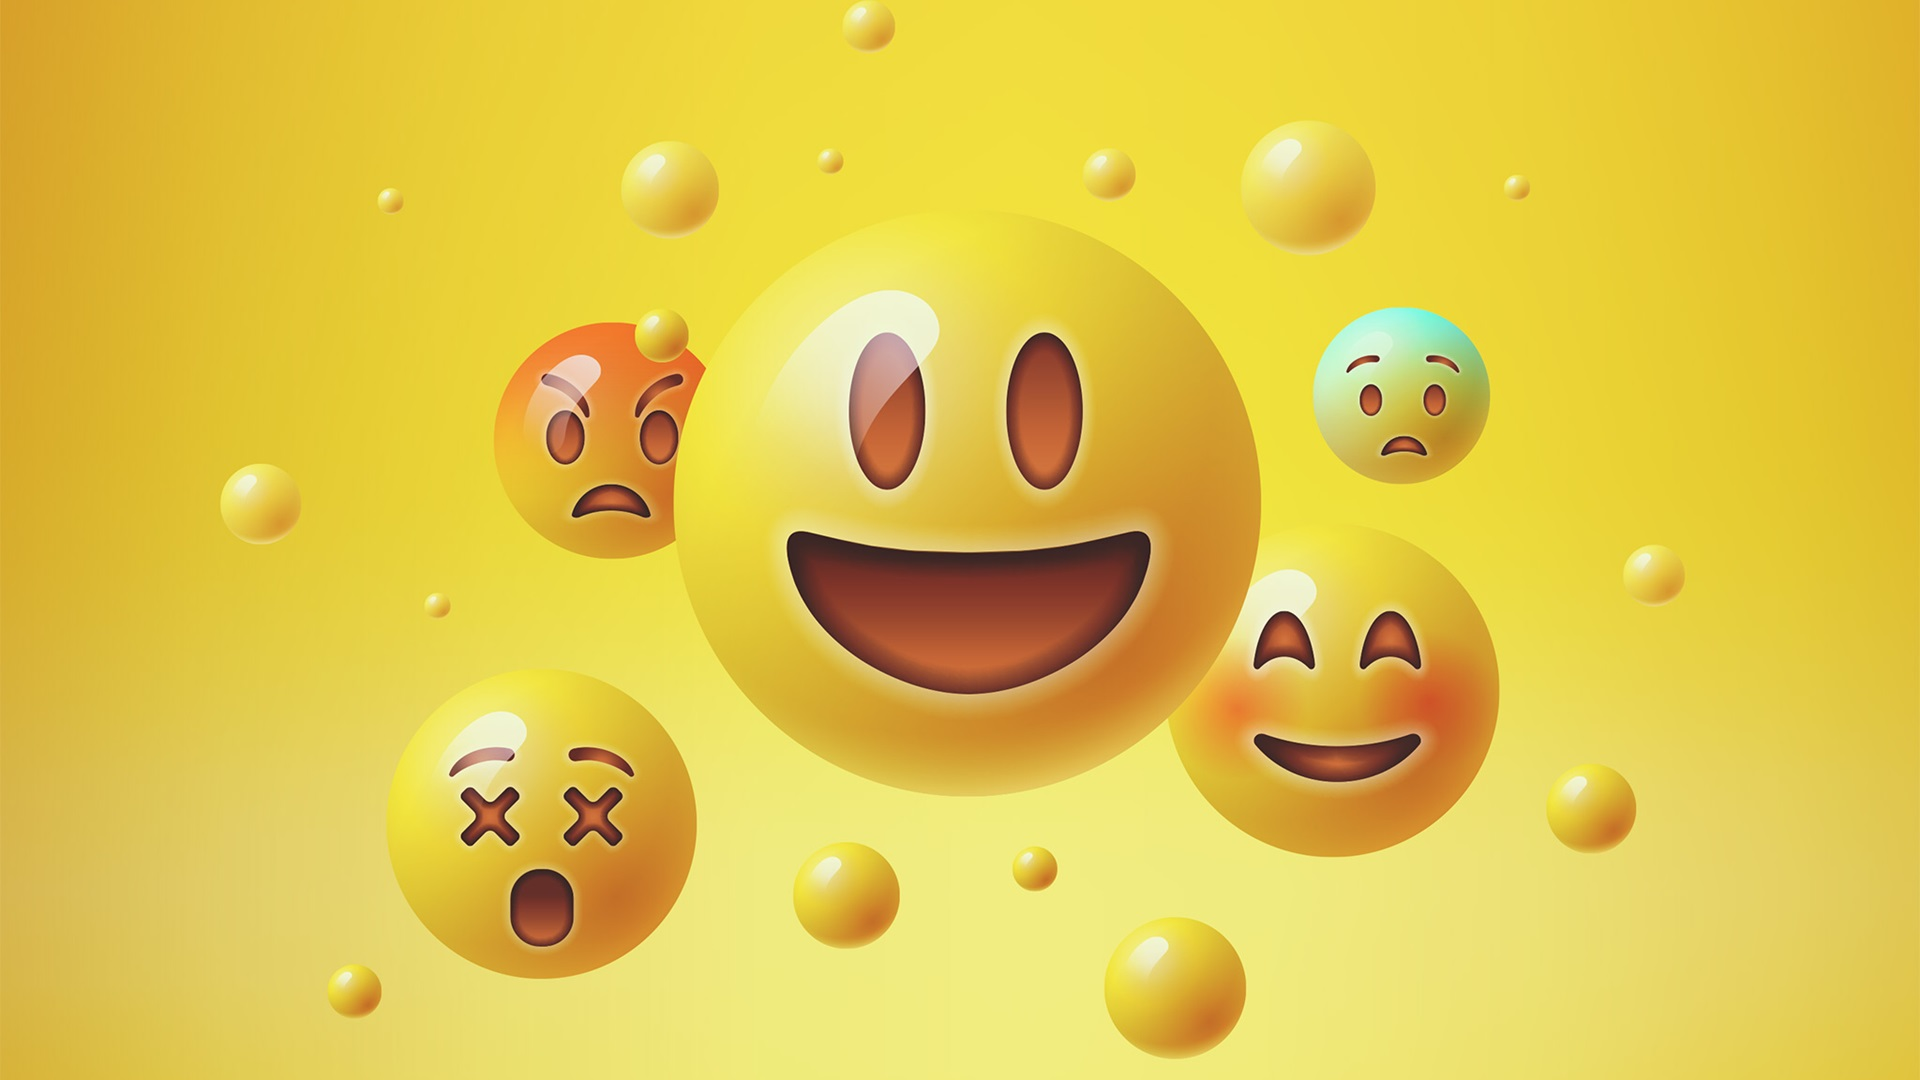 40+ The Cute Expressions Of Emoji Wallpaper For Mobile